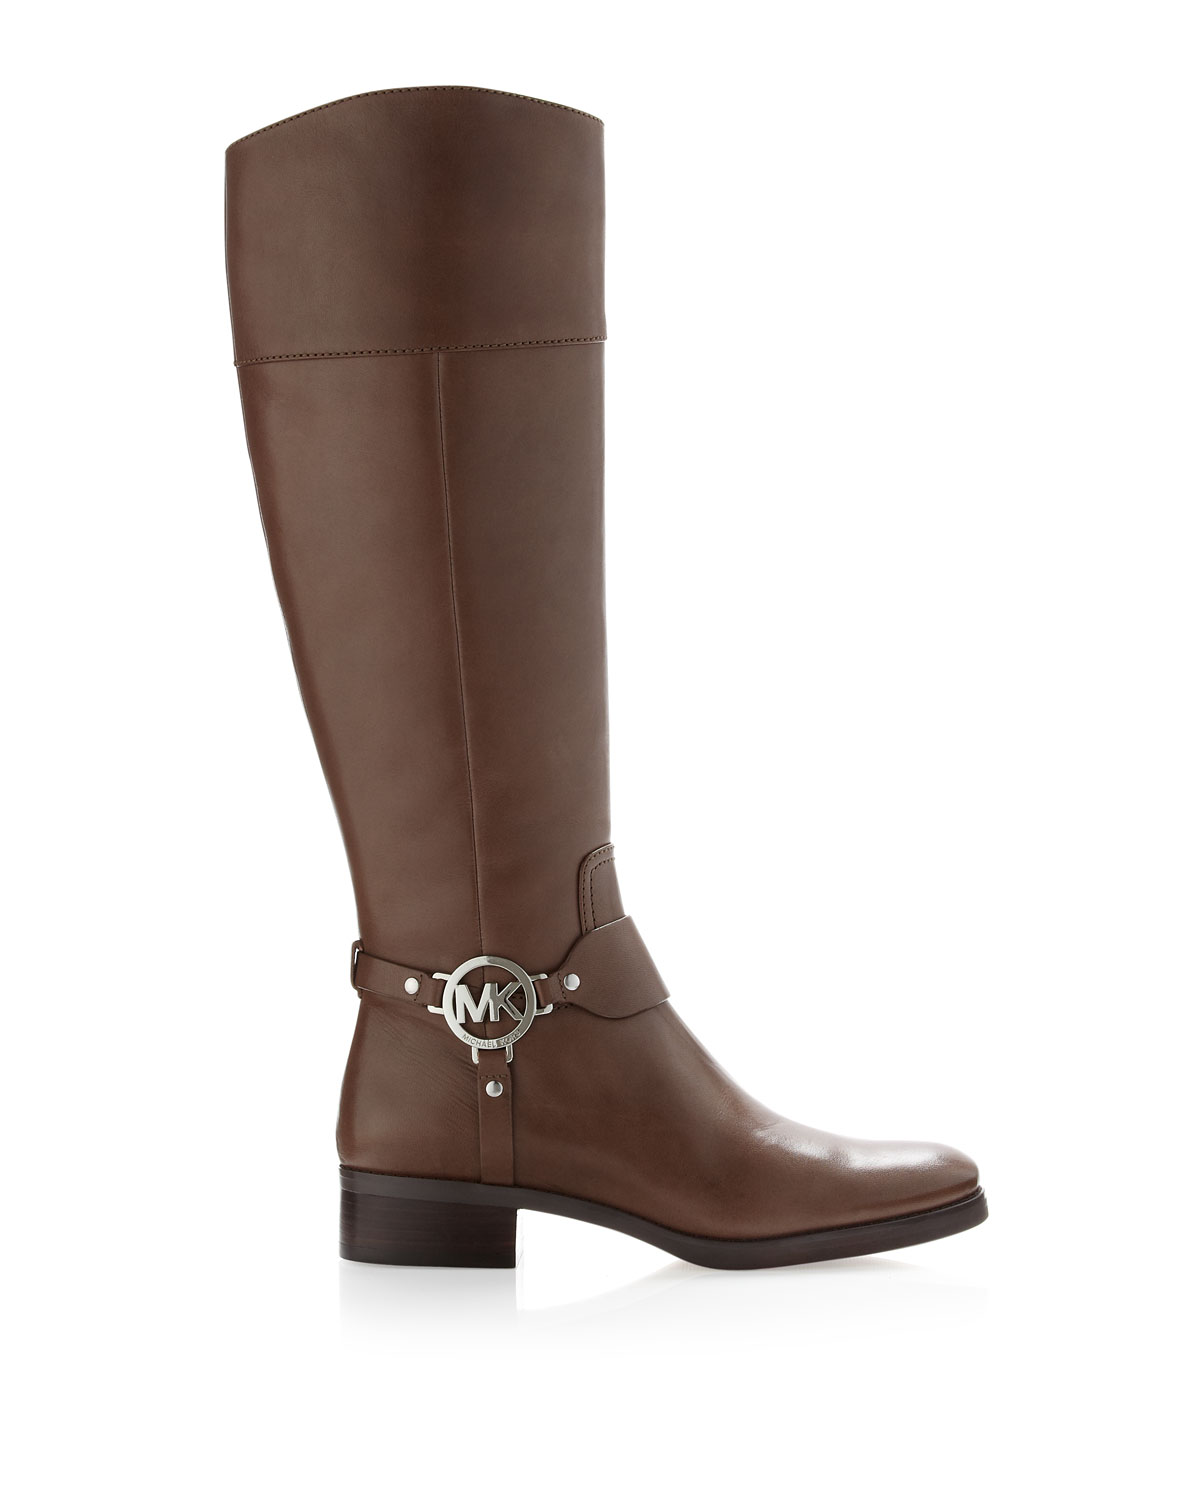 michael kors fulton harness boot in brown lyst